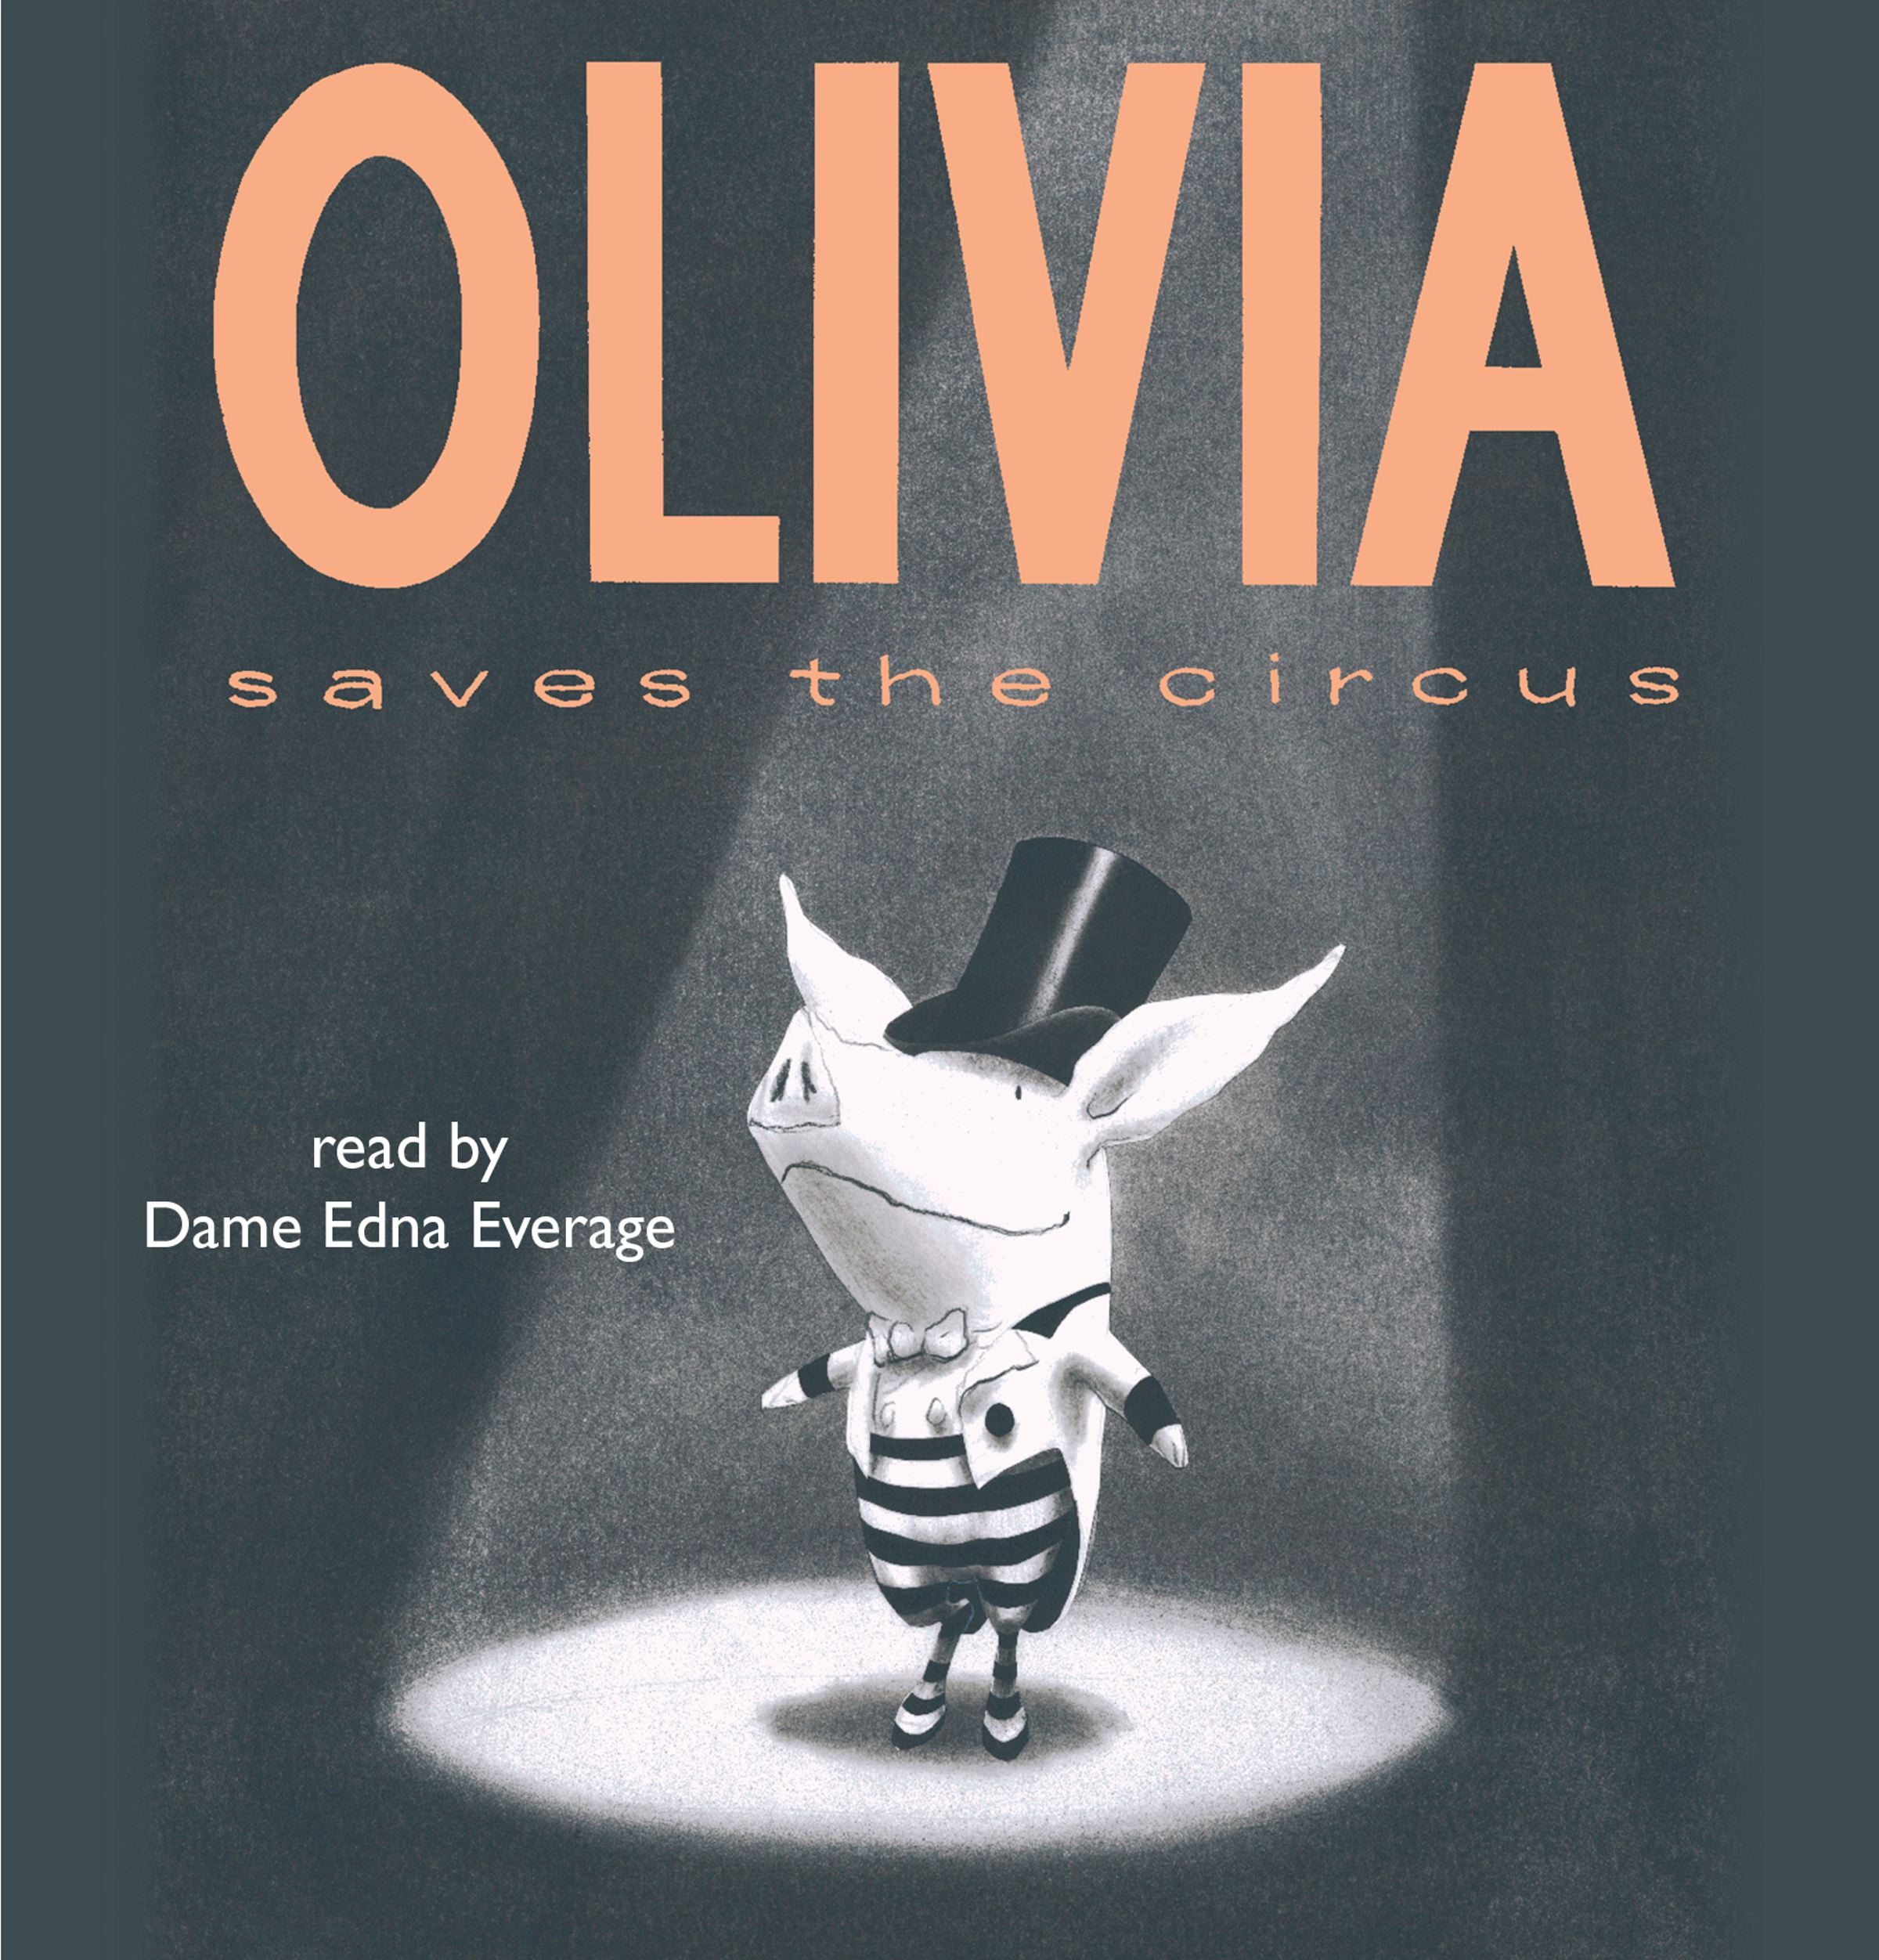 Olivia-saves-the-circus-9780743574778_hr